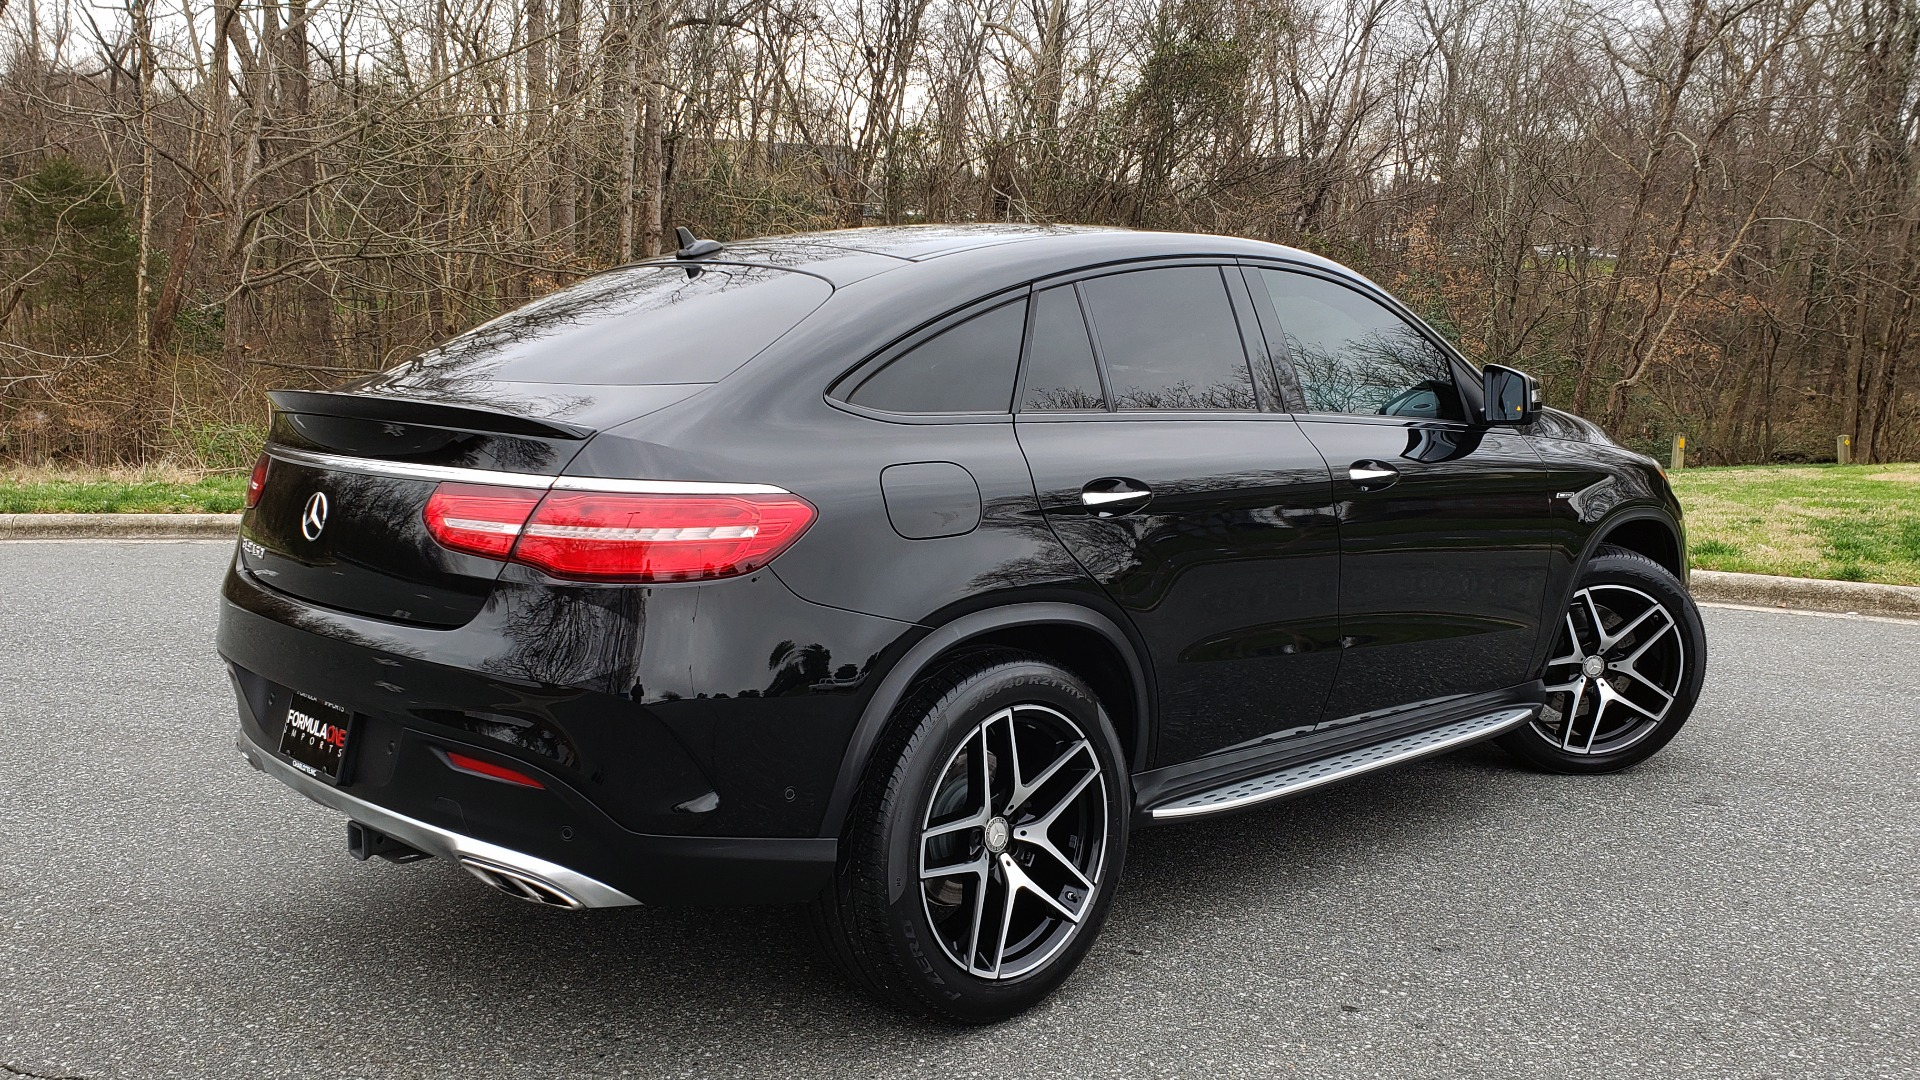 Used 2016 Mercedes-Benz GLE 450 AMG / AWD / PREM PKG / PARK ASST / DRVR ASST / SUNROOF for sale Sold at Formula Imports in Charlotte NC 28227 7